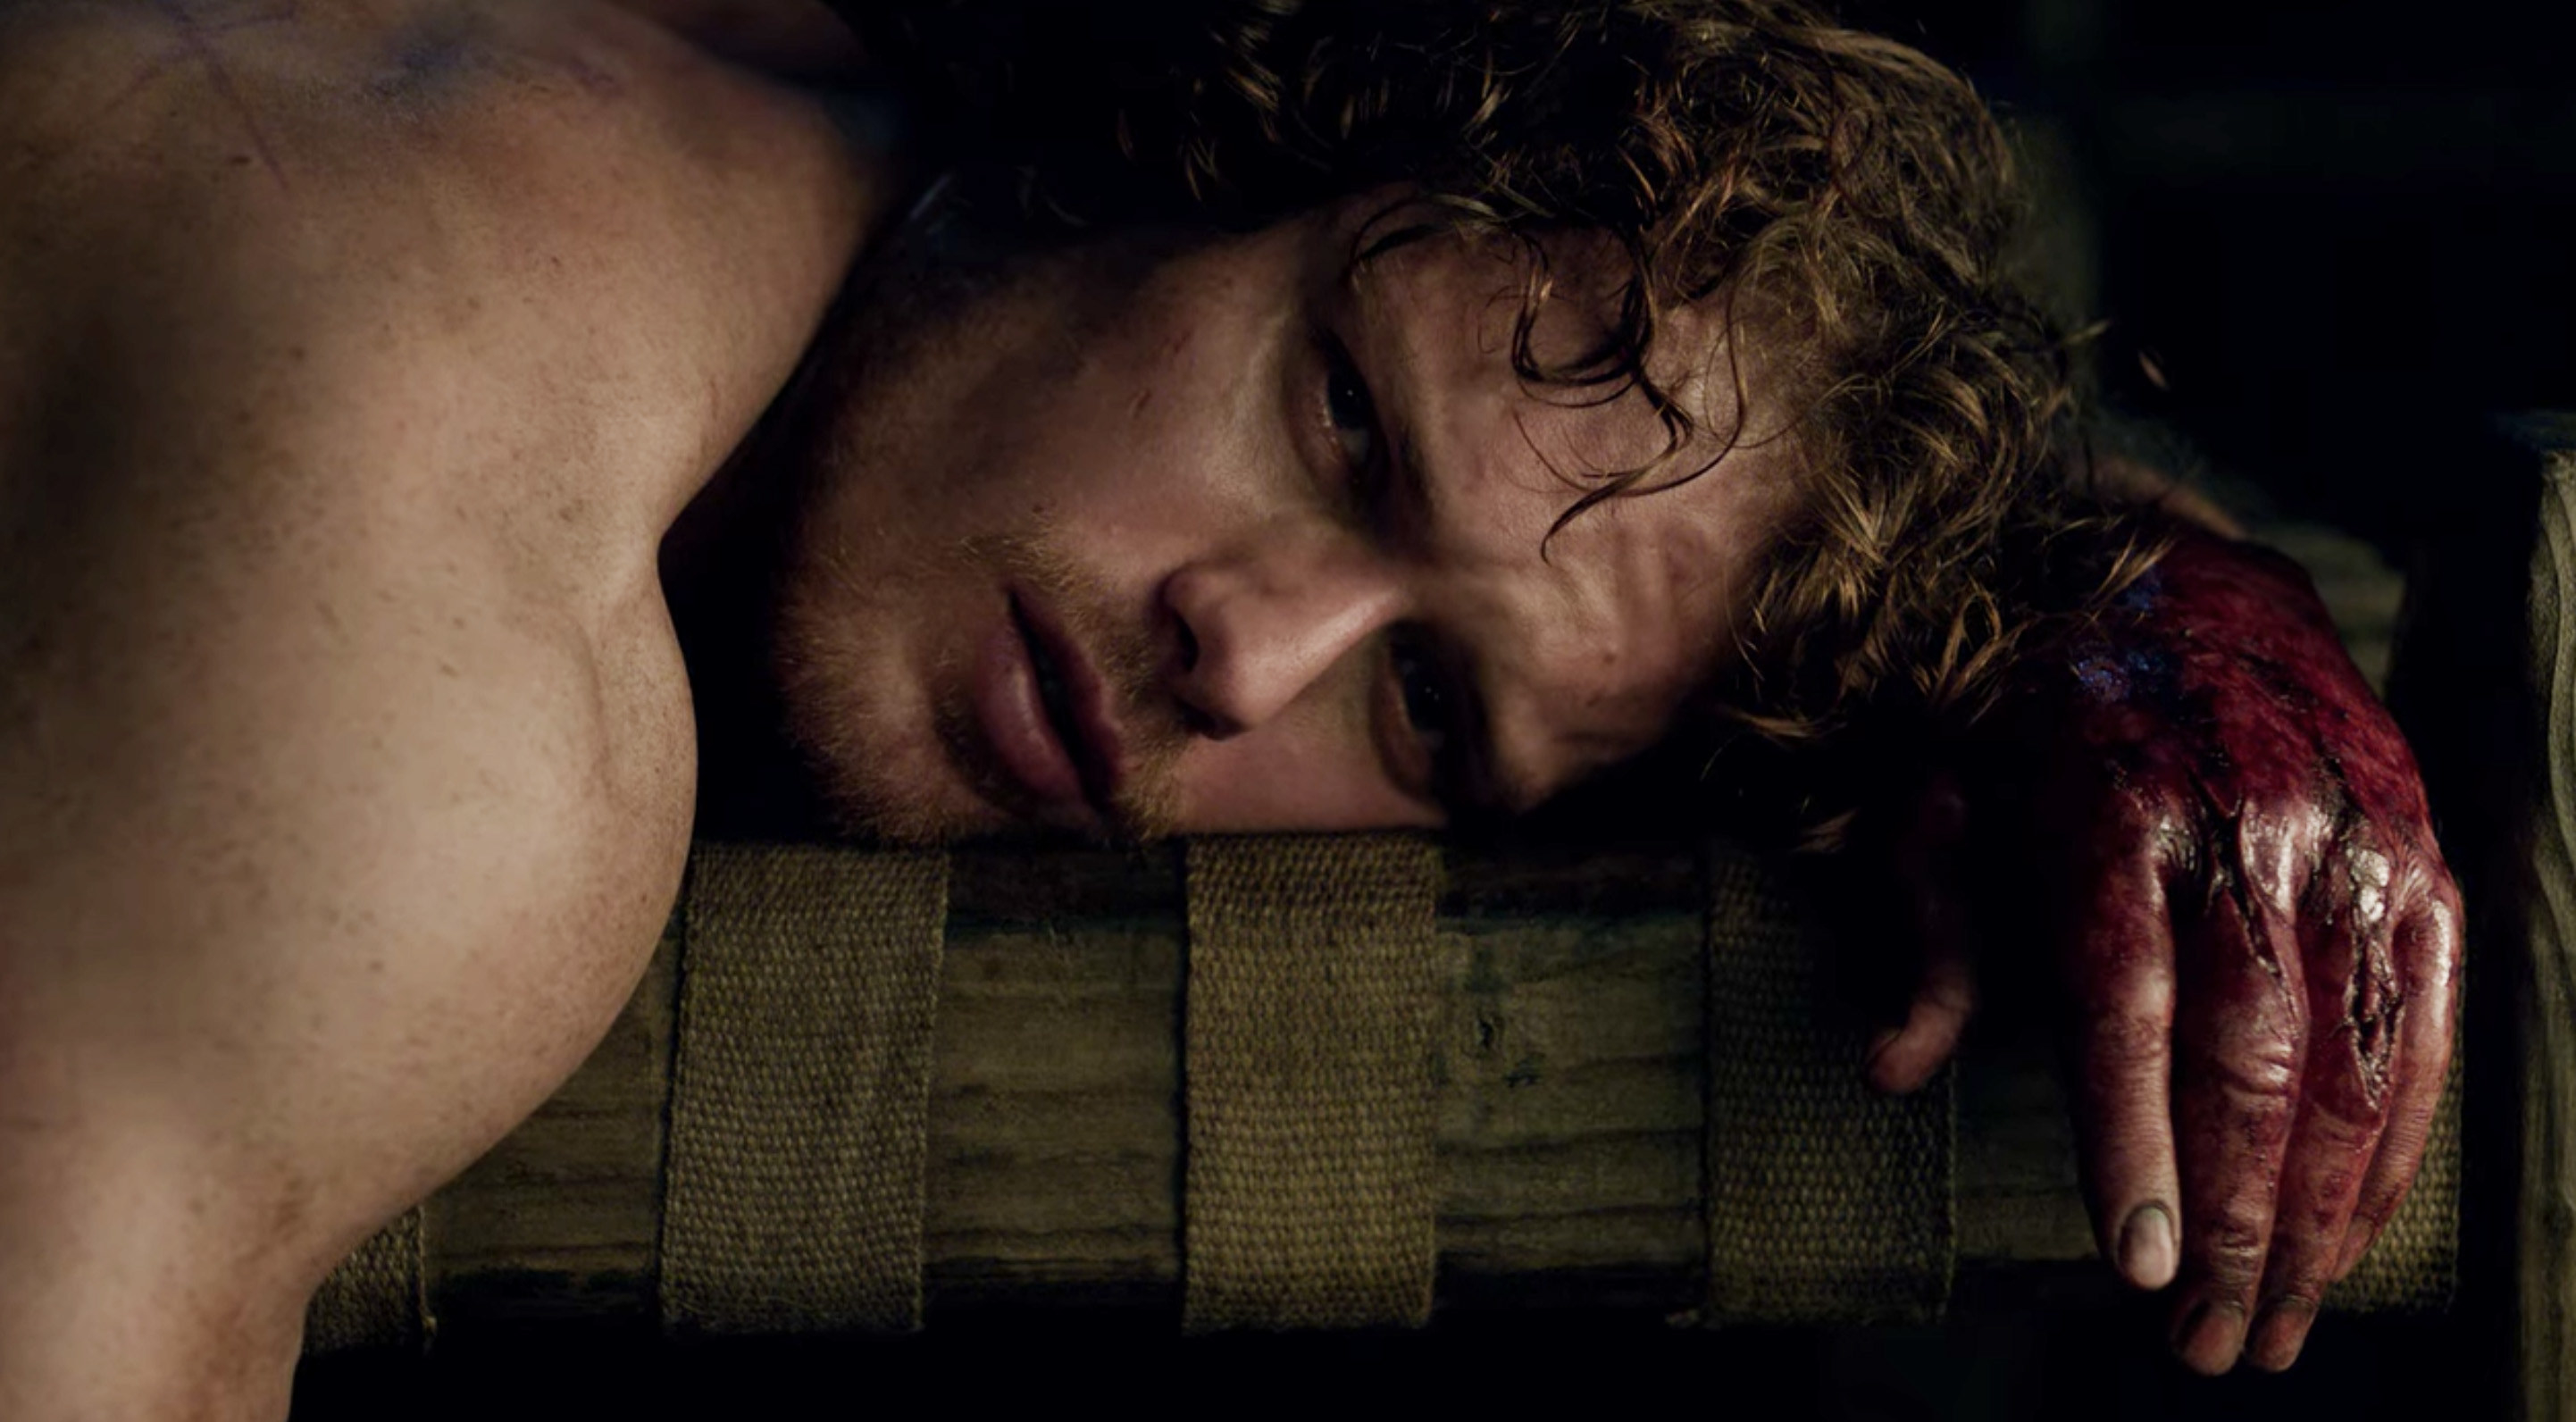 Jamie crying and lying on a bed with a bloody hand